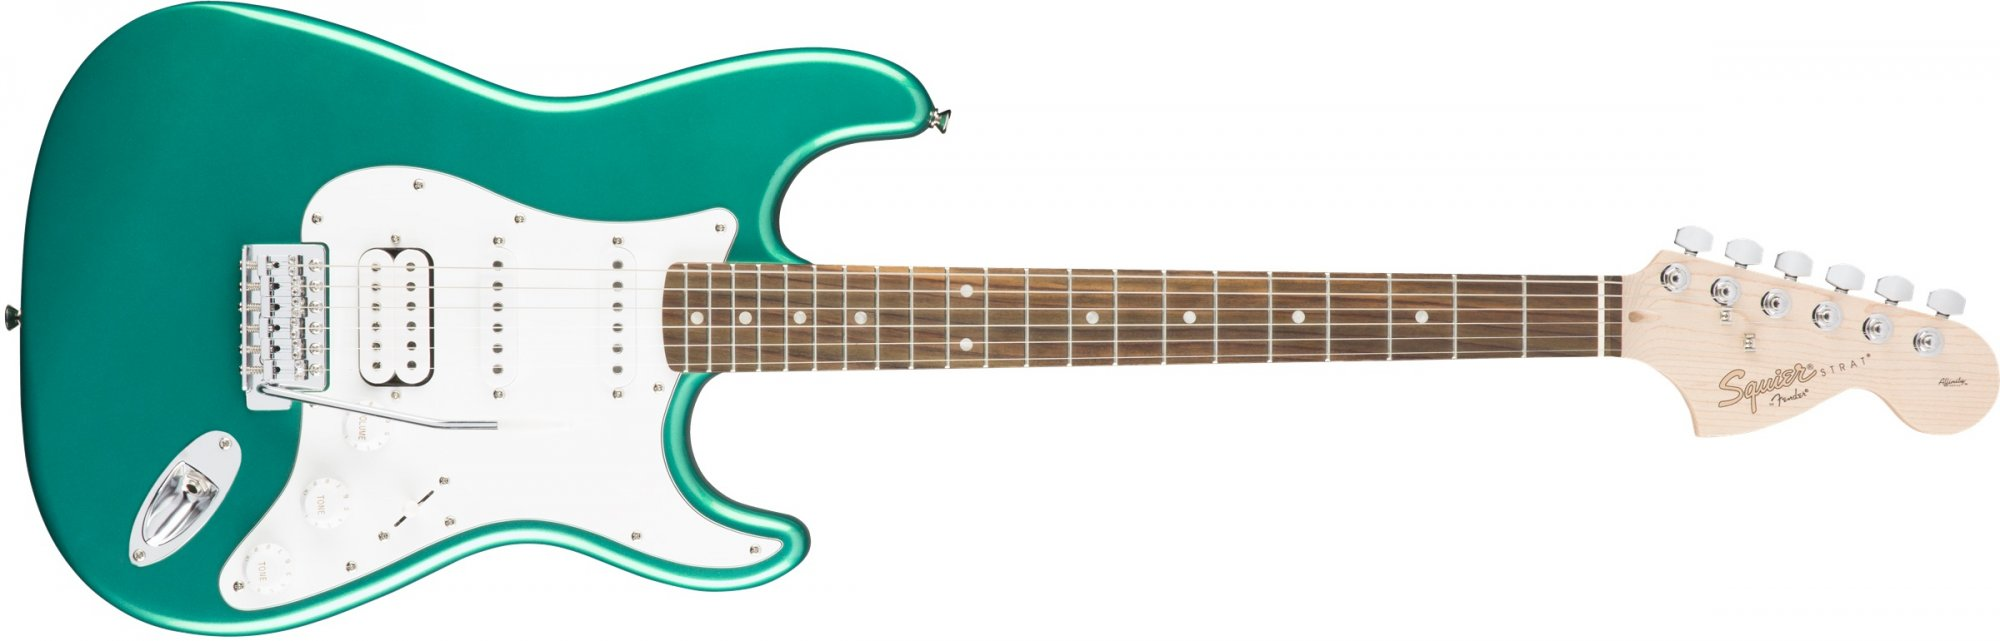 Fender Squier Affinity Series Stratocaster HSS Electric Guitar-Race Green